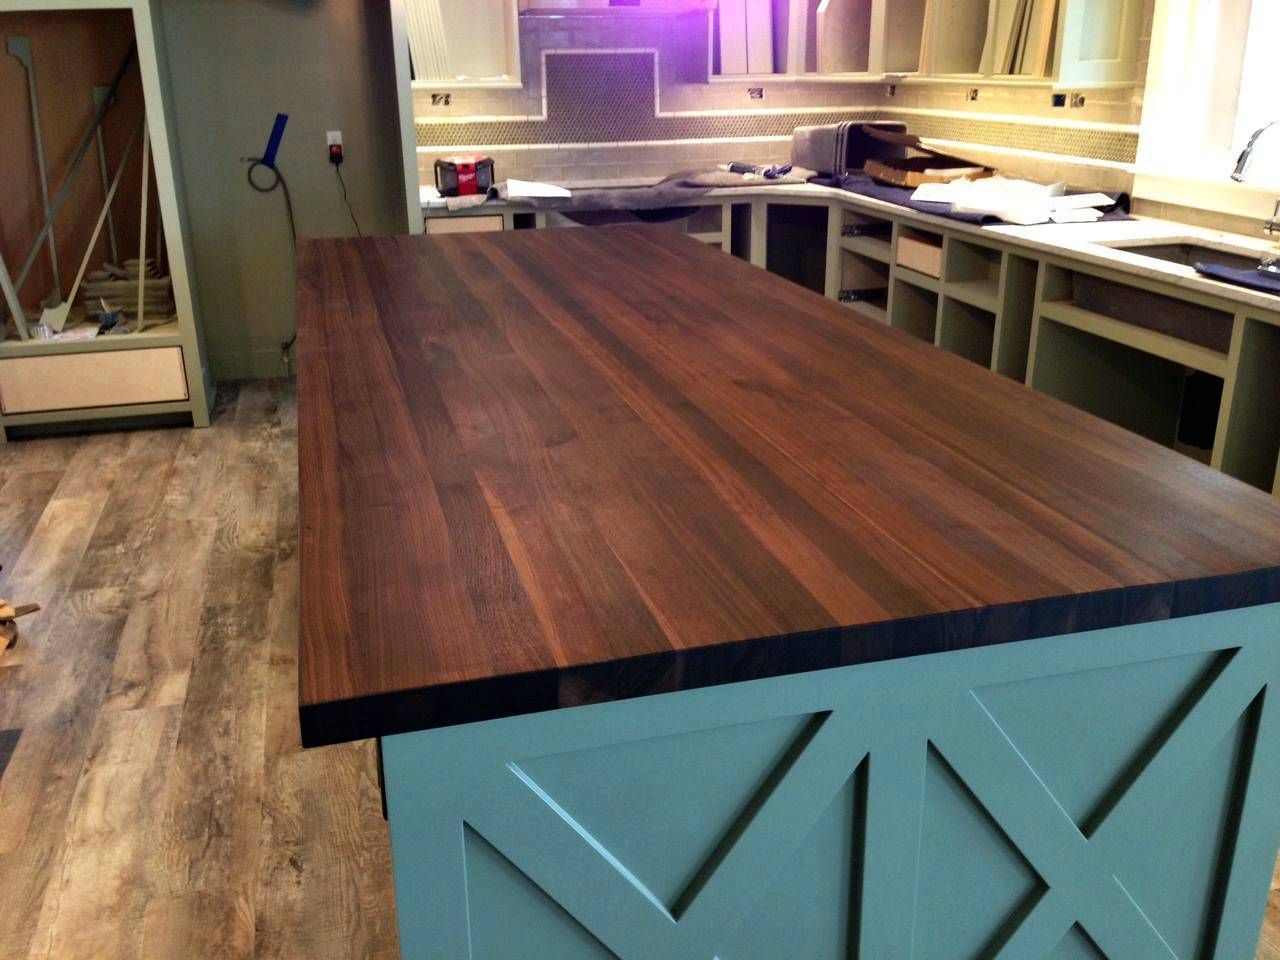 Tung Oil For Butcher Block Countertops Image Of Fake Butcher Block Countertop Like The Cabinet